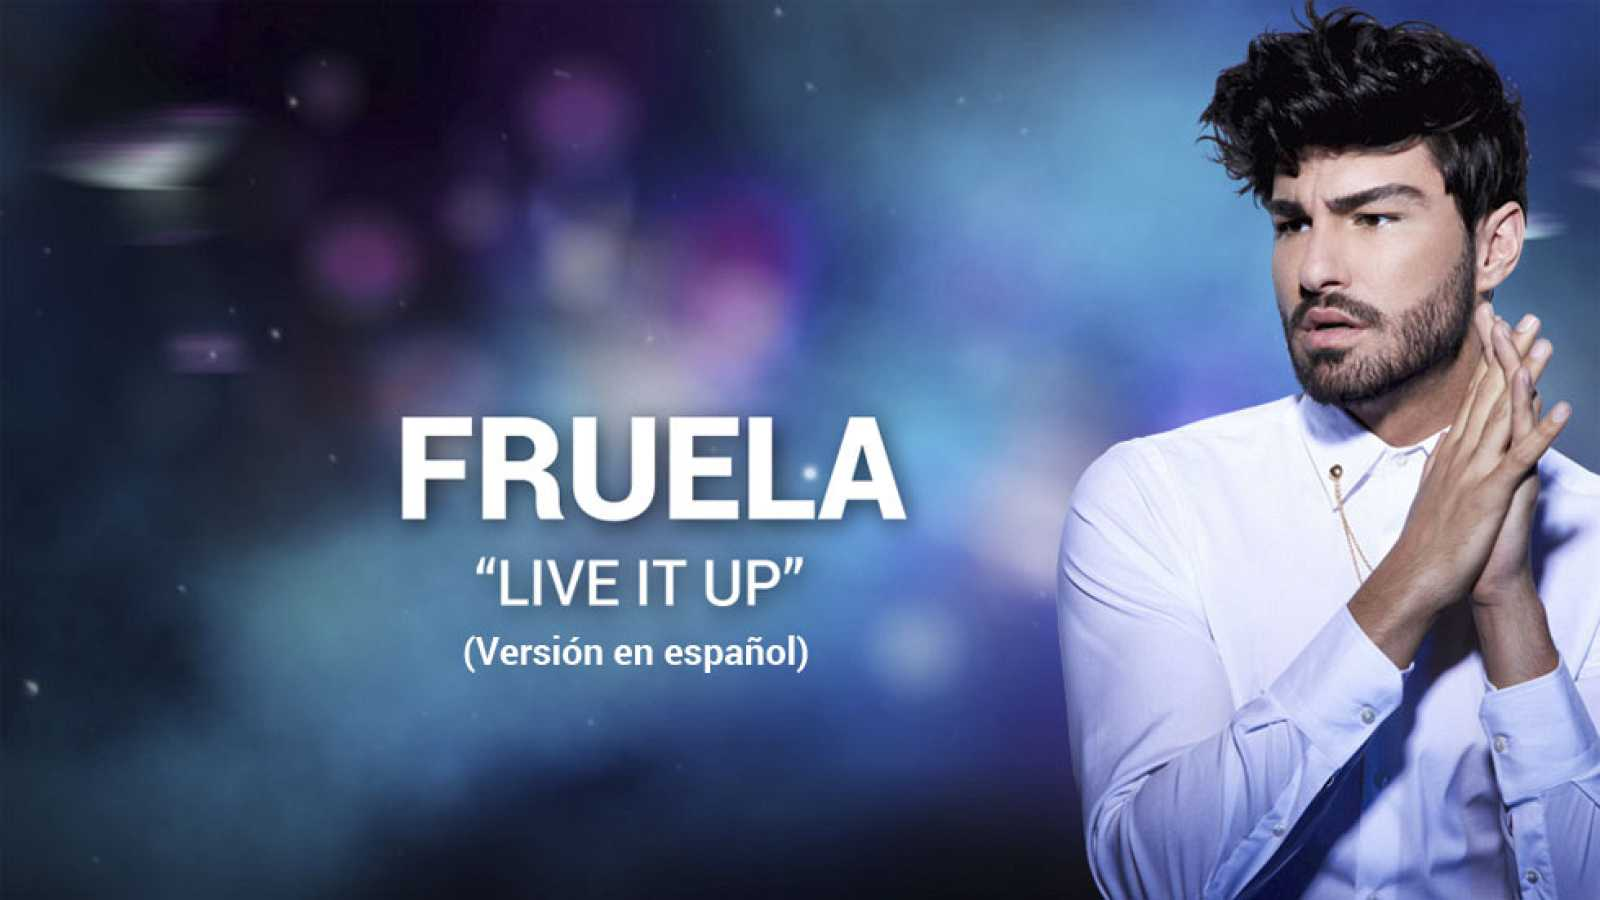 Eurovisión 2017 - Fruela canta 'Live it up' (versión final #Eurocasting)